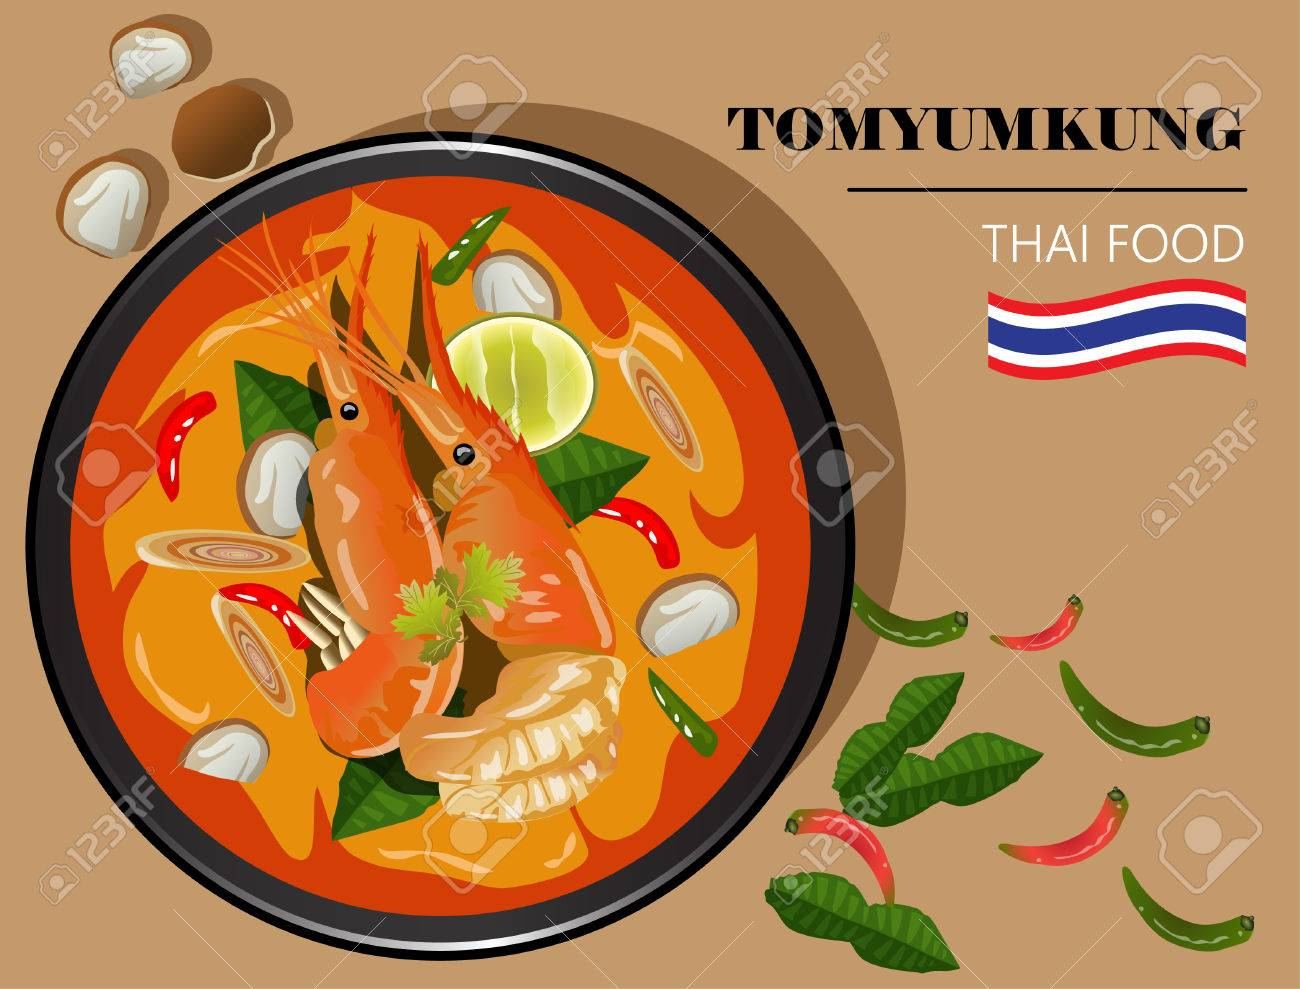 Cuisine Illustration food illustration tom yum kung thai spicy soup vector top view